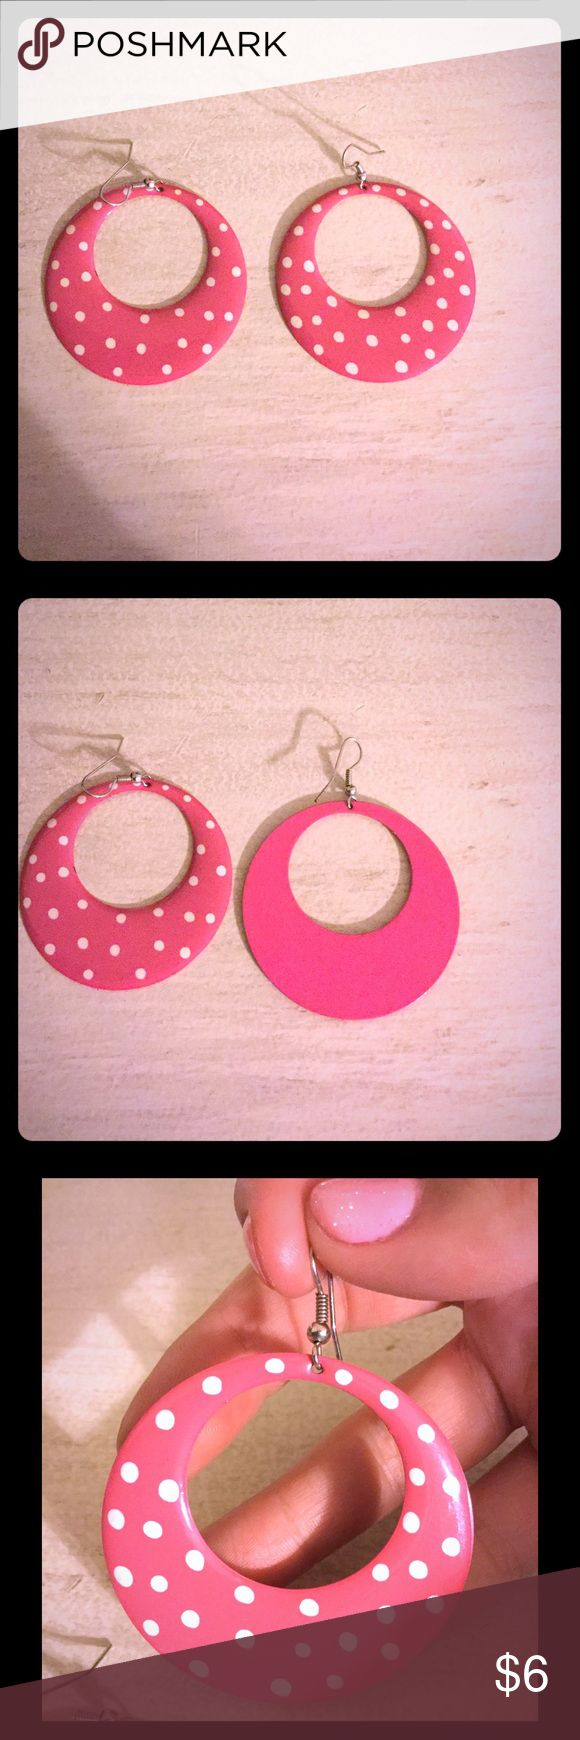 Pink polka dot earrings Pink polka dot earrings! Super cute! I honestly bought them to wear for tacky day as a teacher but not to say they can't be worn any other day. I think they are adorable! Just not my style. I'm asking $6 or best offer. Jewelry Earrings